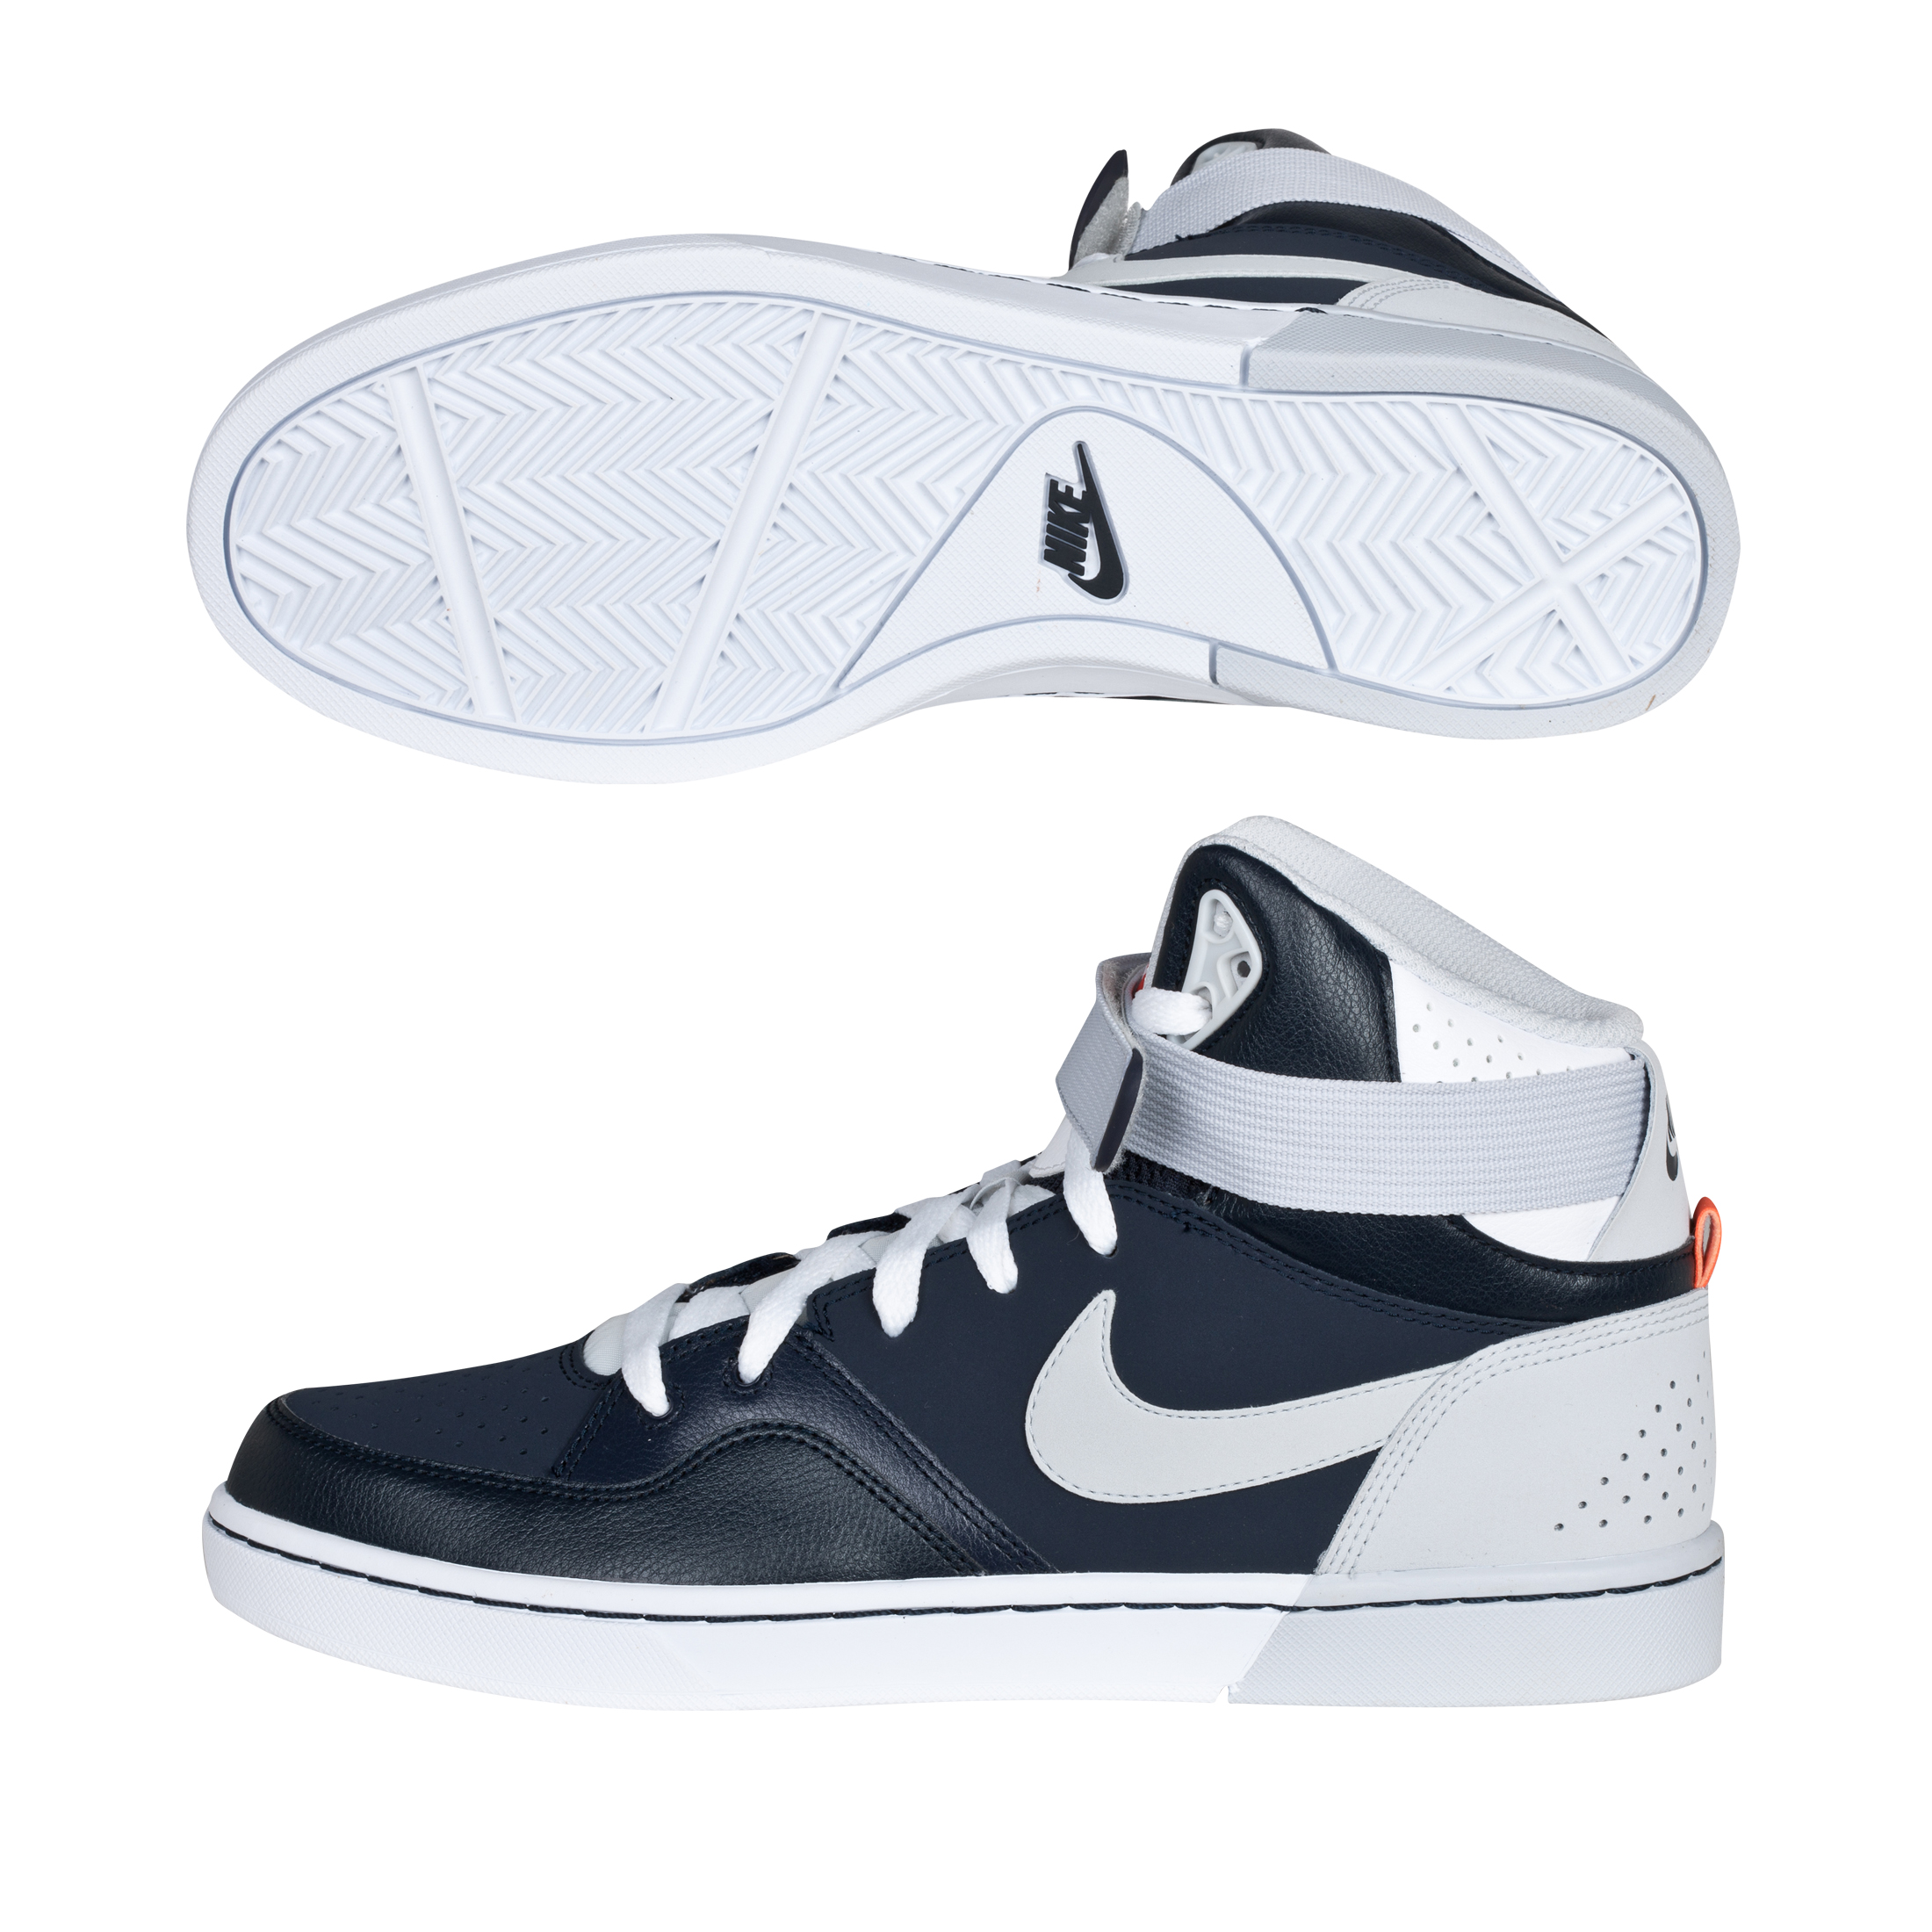 Nike Court Tranxition Trainers - Dark Obsidian/Platinum/White